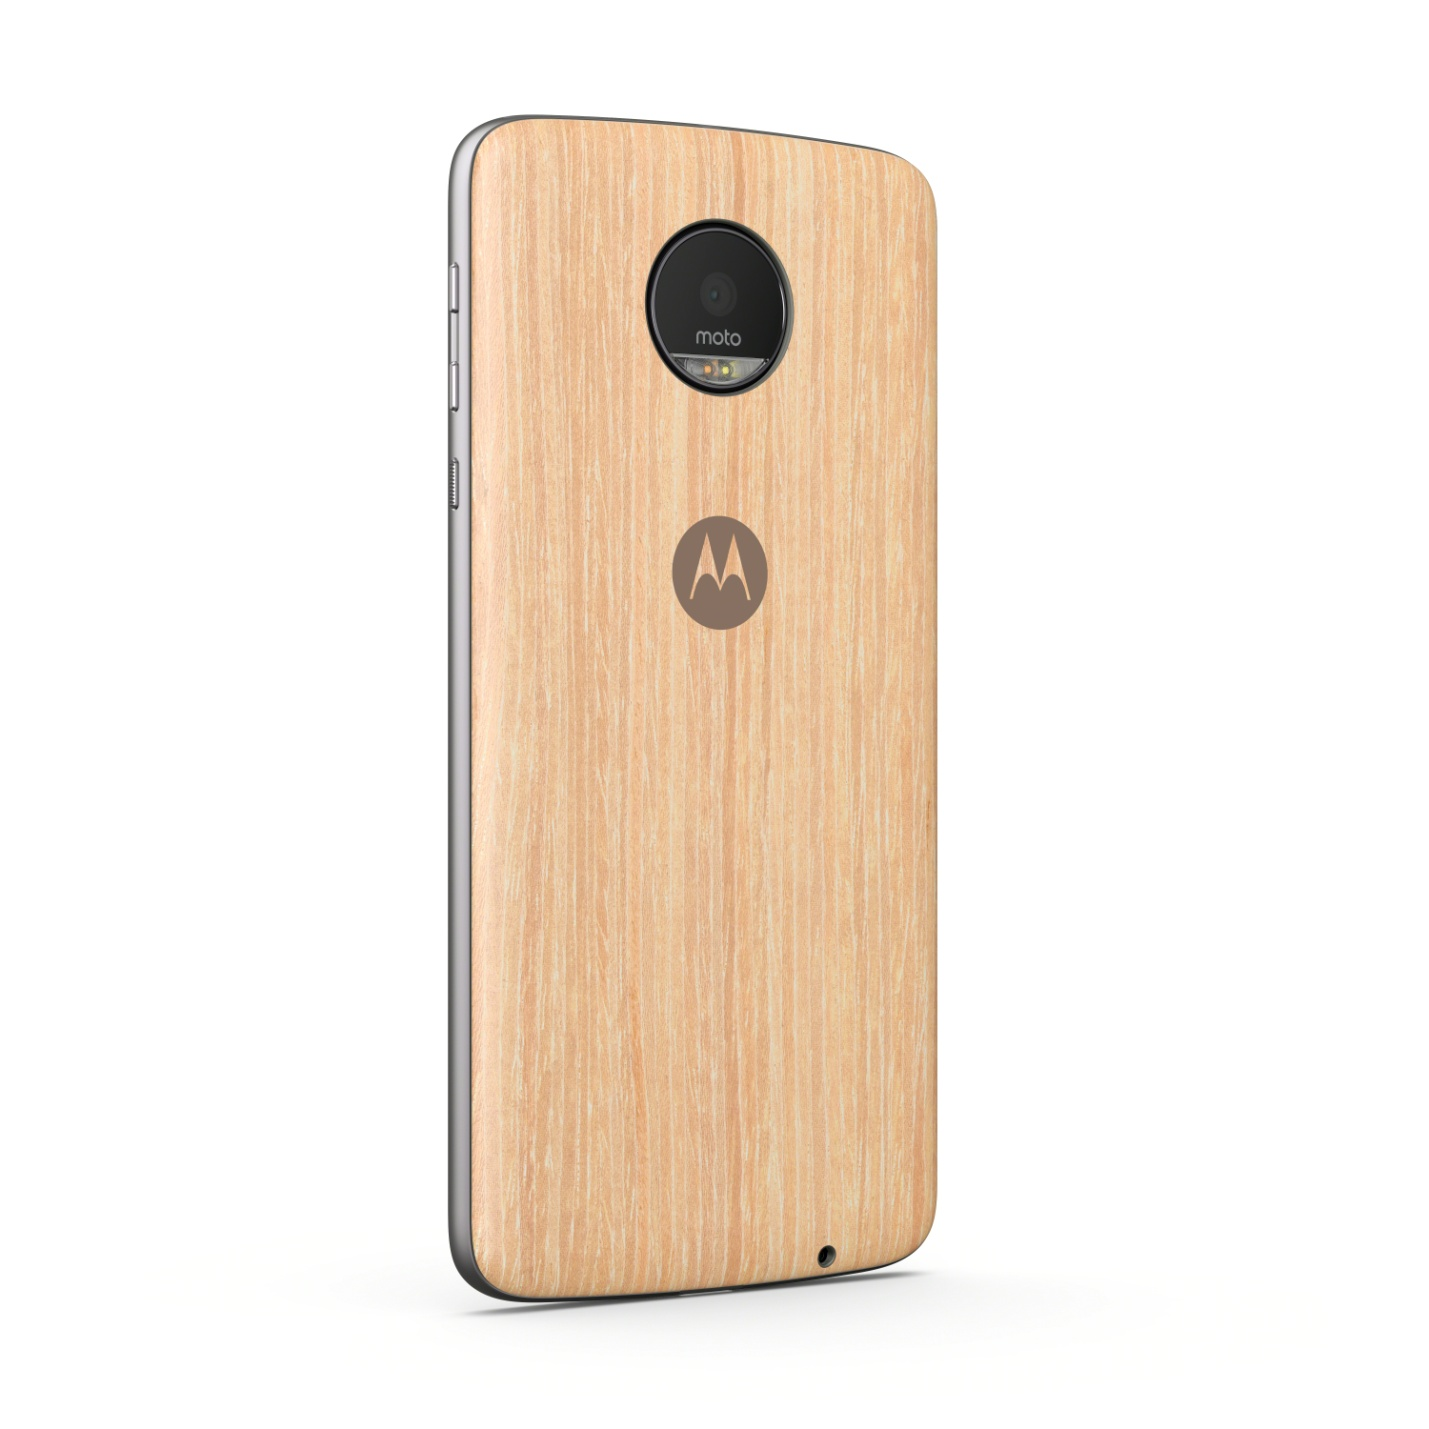 http://motorola.press/Files/_Products/Moto%20MODs/Photos/Style%20Shell%20MOD/Washed%20Oak/MotoStyleShell_WshedOakMotoZ_AmpFrontDyn_ROW_RGB.jpg